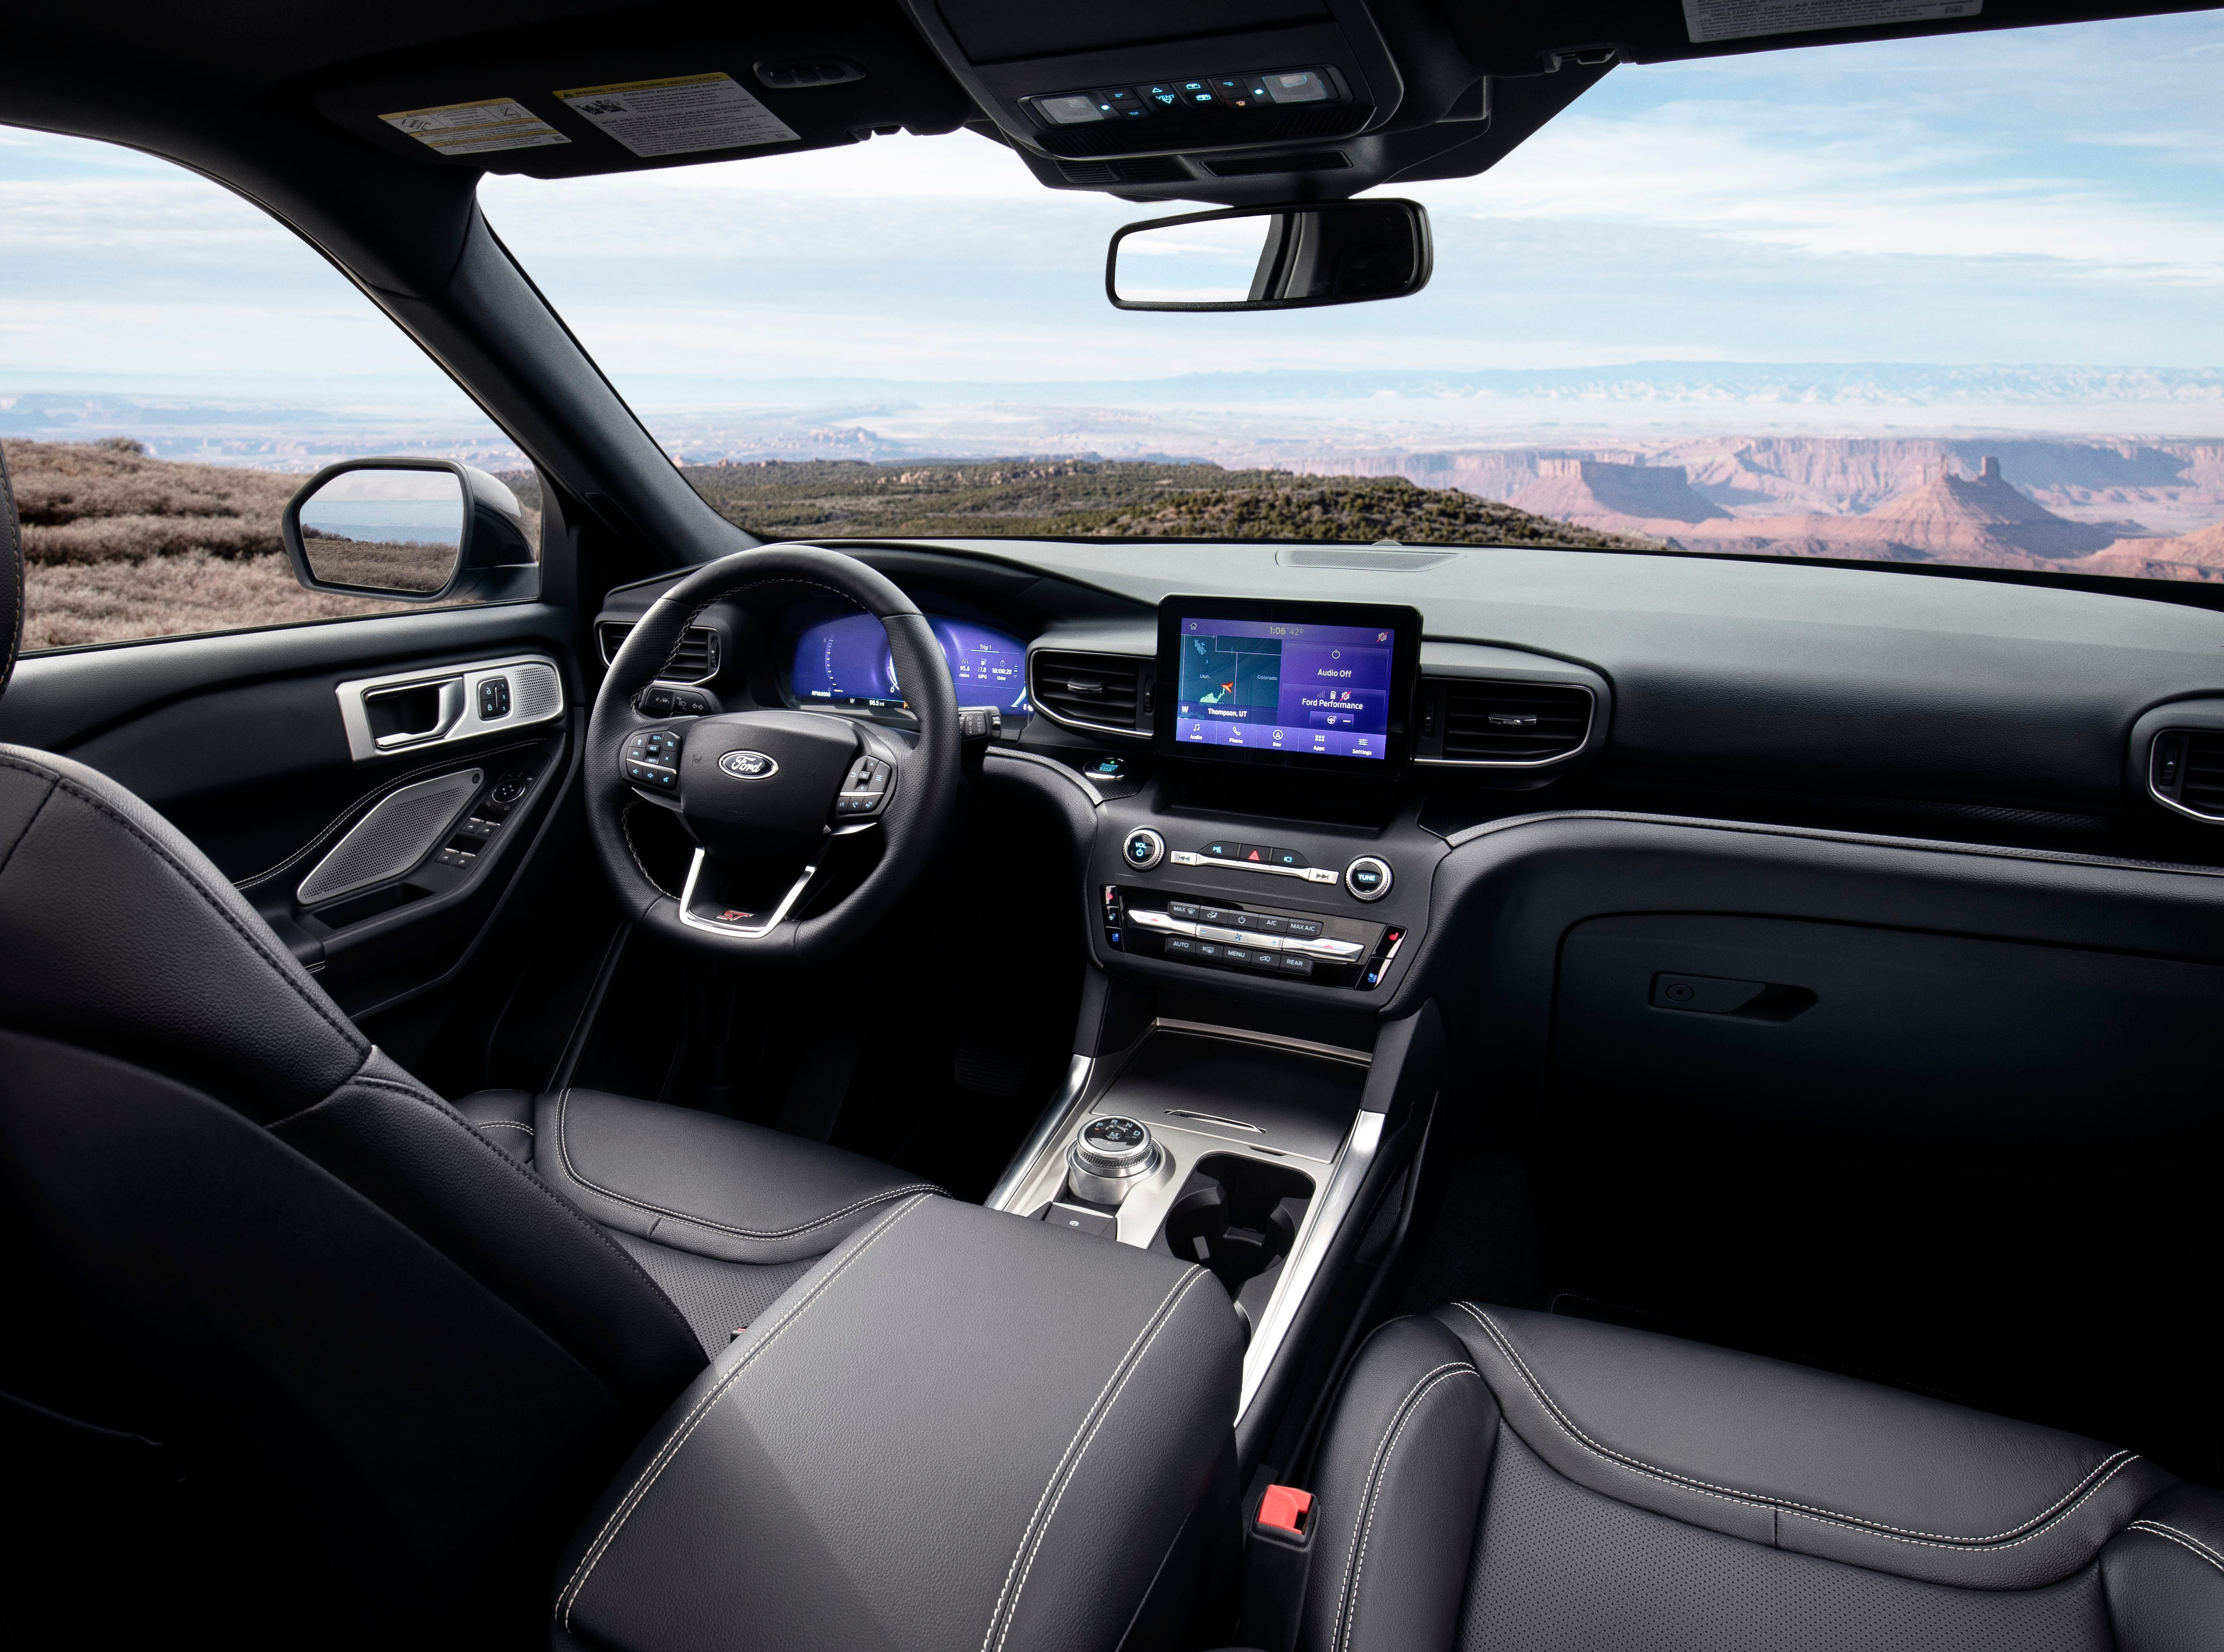 """""""As with Edge ST, Explorer ST offers a Sport mode for an exhilarating ride. When engaged via the selectable drive mode dial in the center console, the steering system tightens for sportier reaction, the gas pedal responds more aggressively, gears hold longer and shift quicker, and an enhanced engine note plays through the cabin."""""""